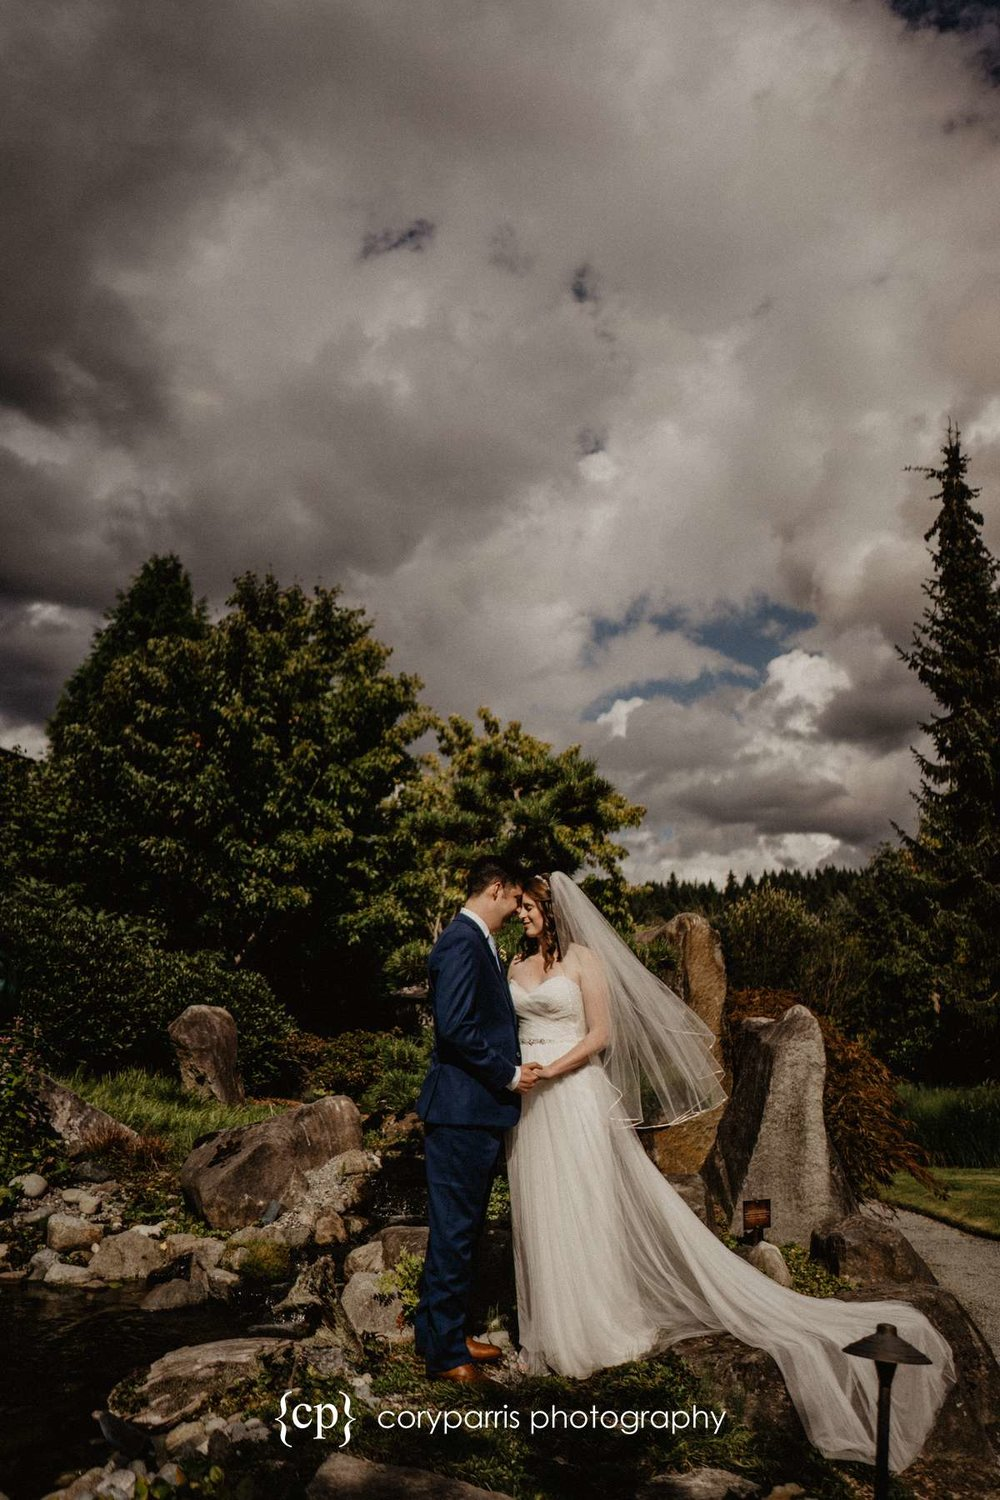 Lindsay and Jake on the wedding day at the beautiful Willows Lodge in Woodinville.